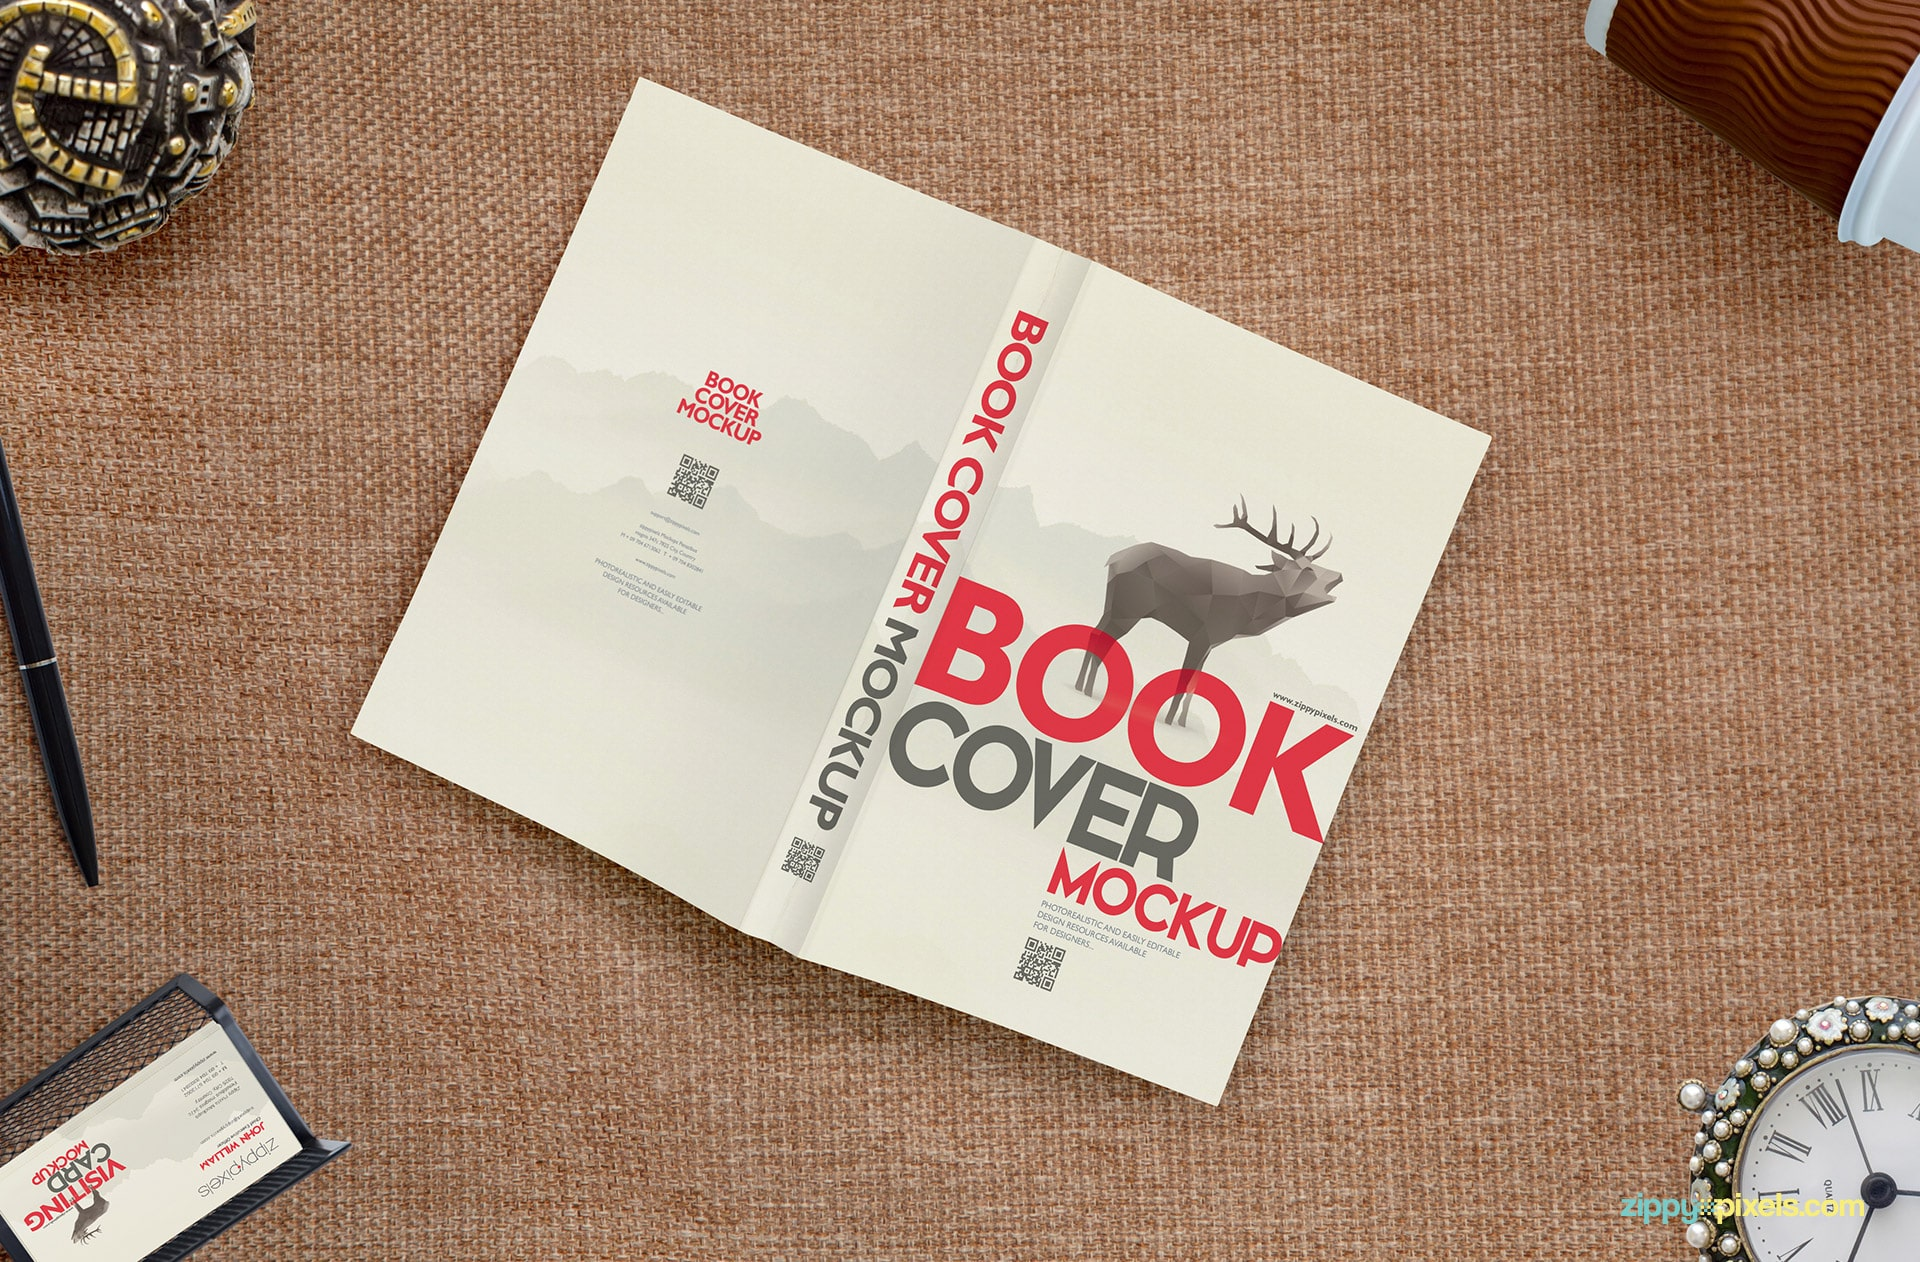 Full book cover mockup showing a book lying face down with coffee cup, business card holder, desk clock, jewelry box & ball pen